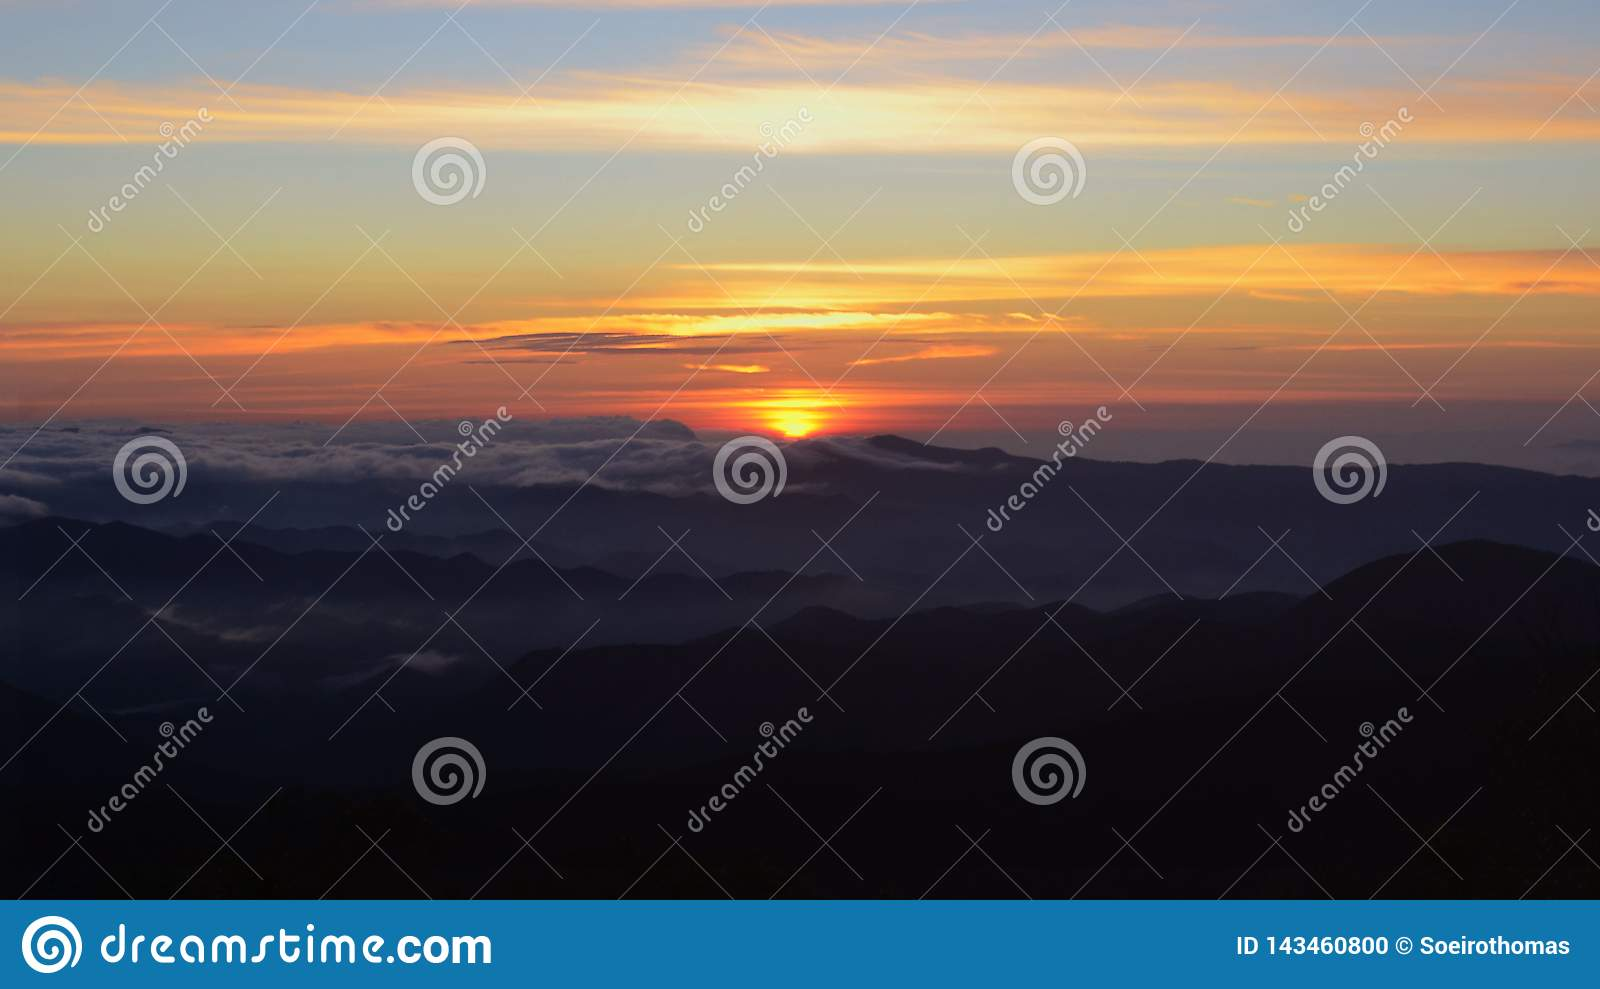 Unique Sunset In The Mountains Covered With Clouds Stock